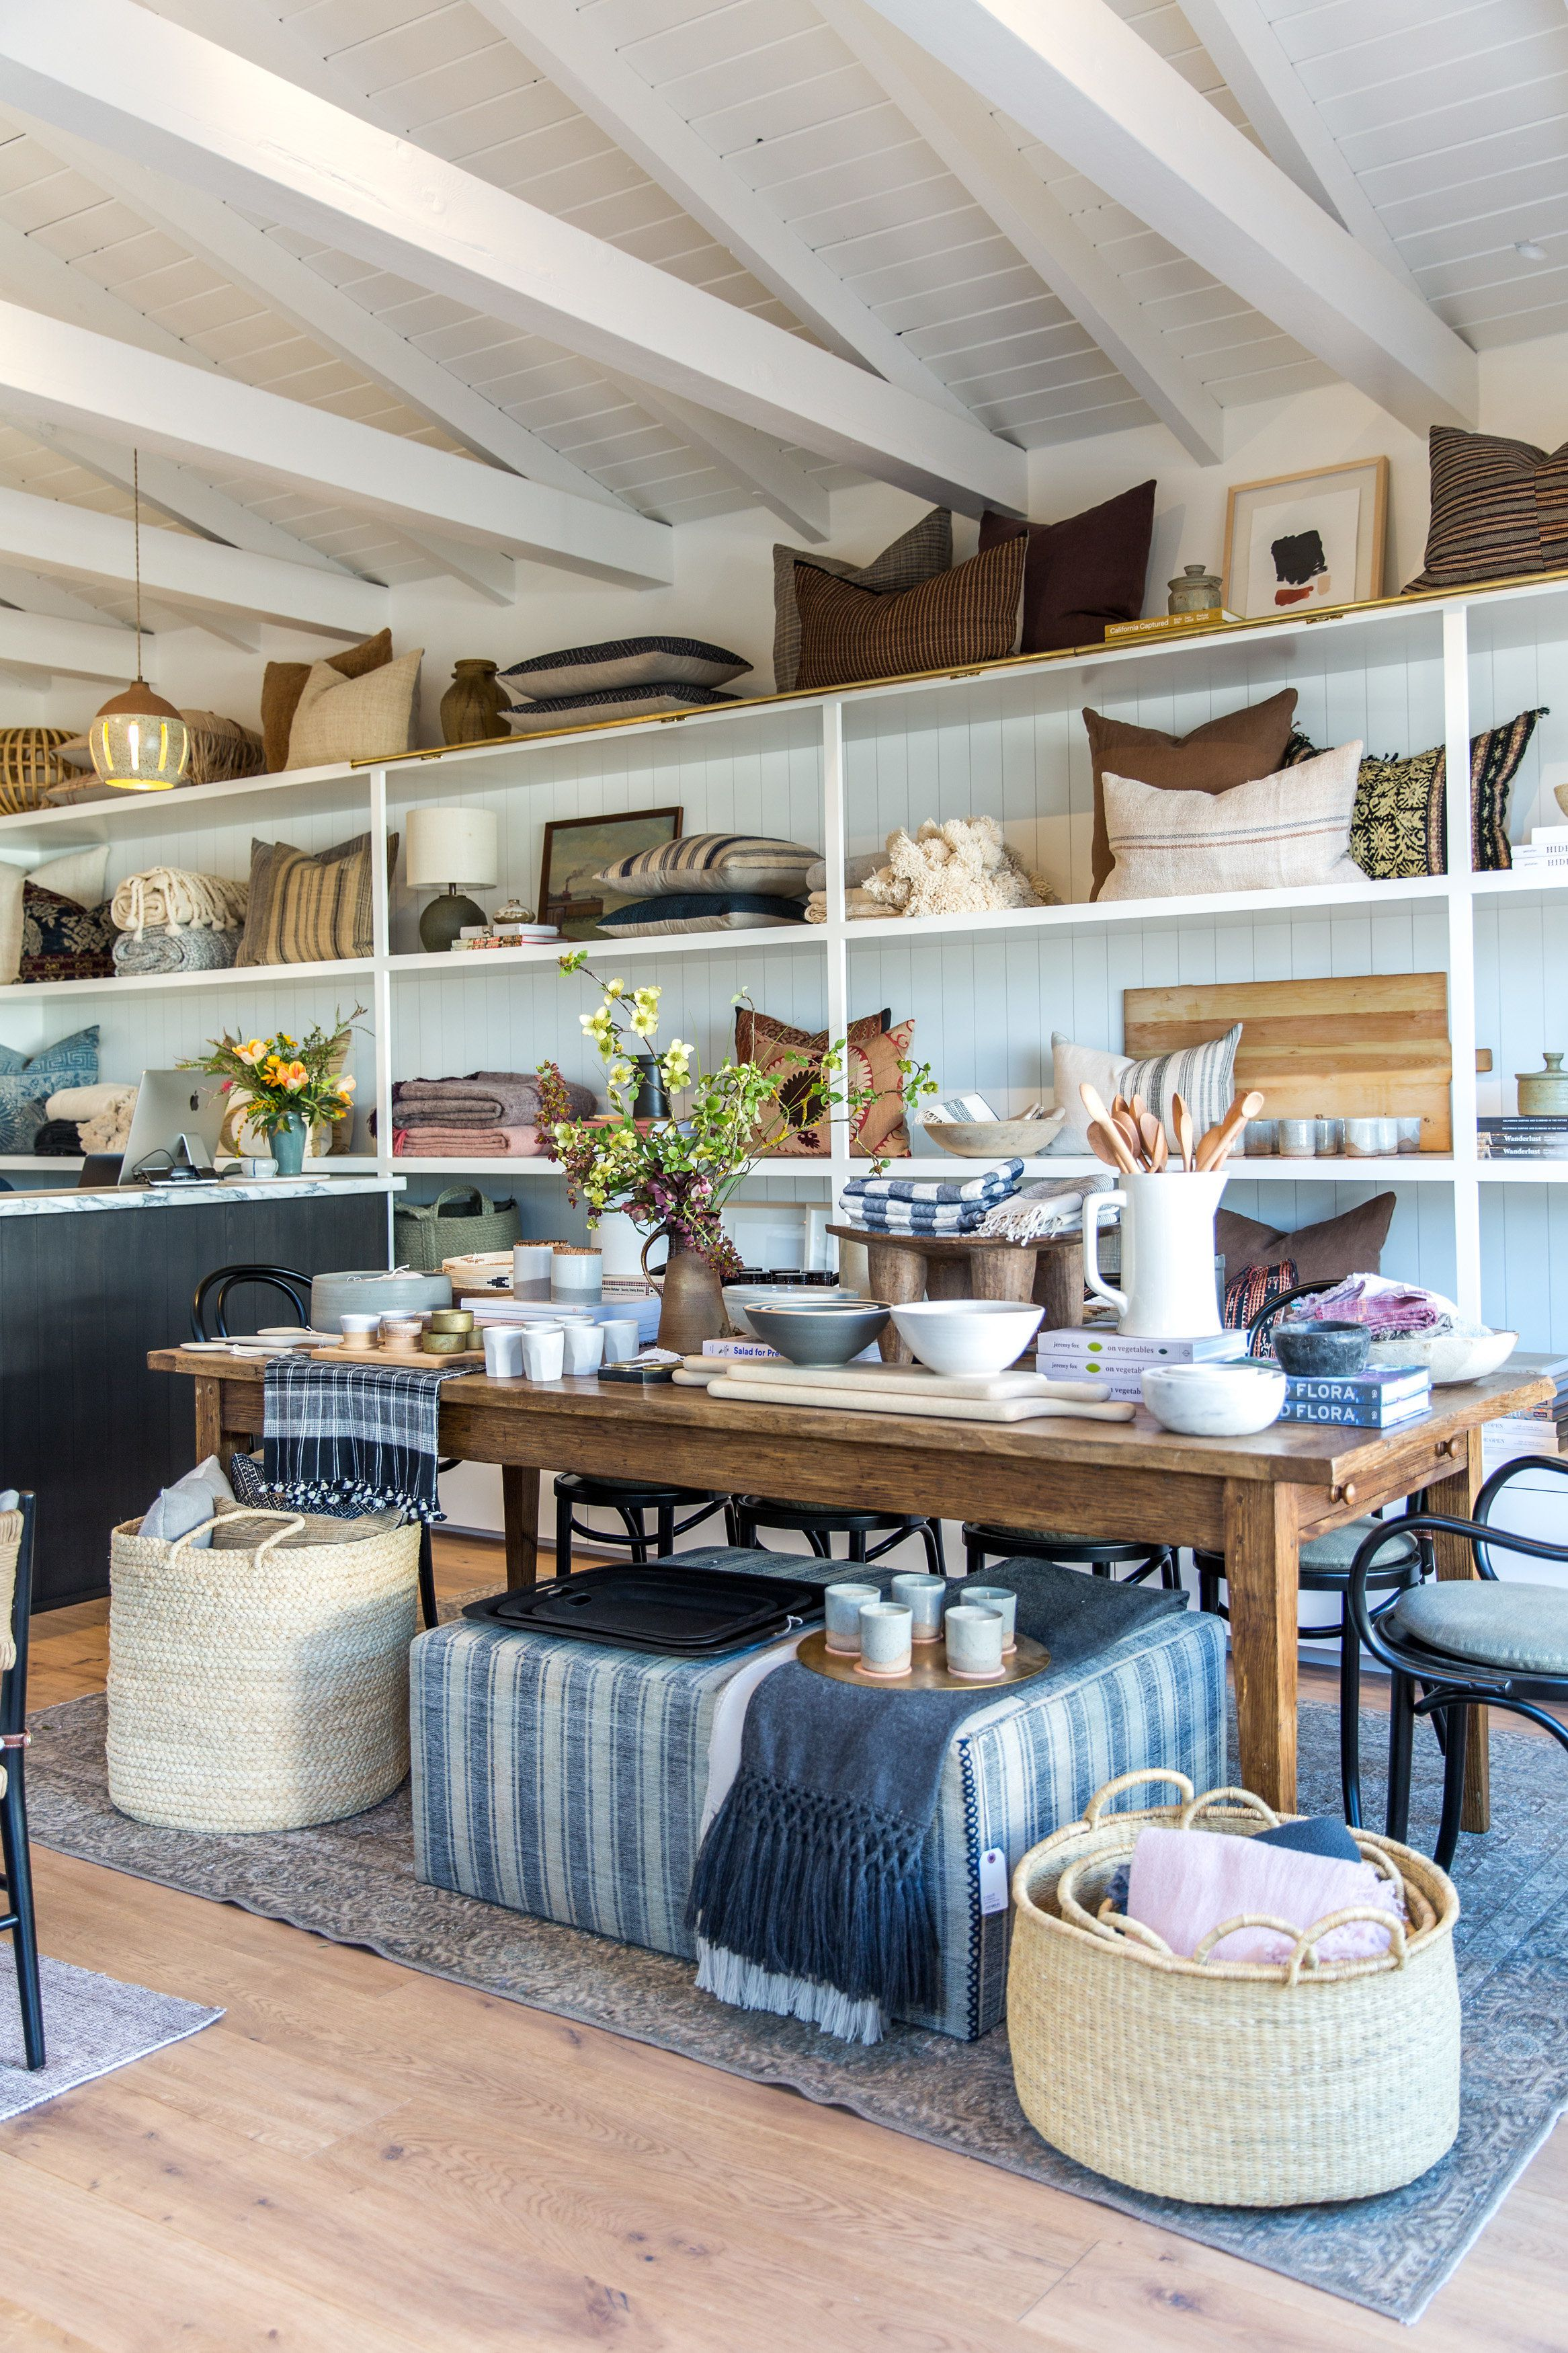 Give it up for the gram 25 interior design stores you need to follow on instagram